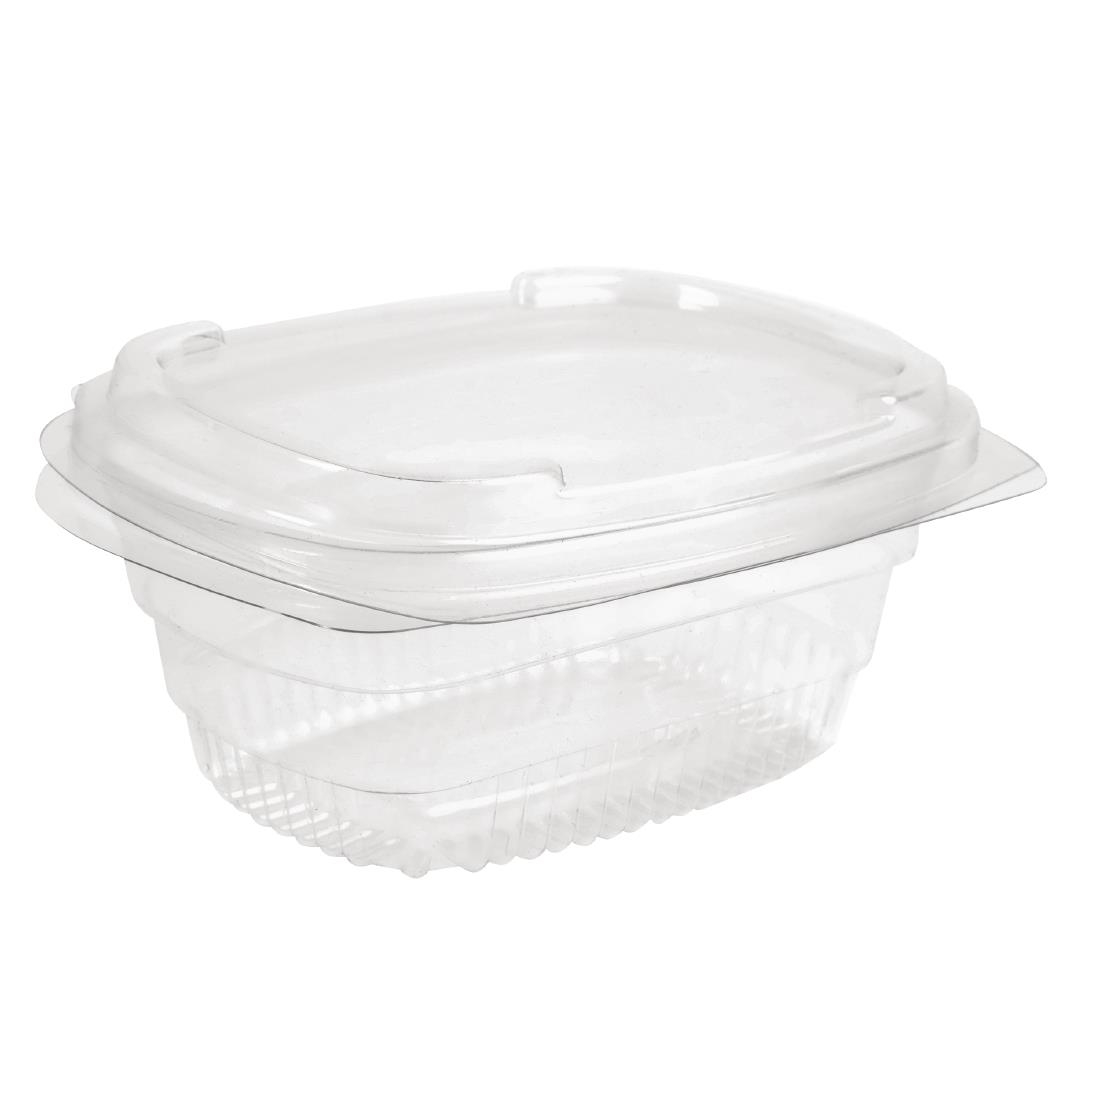 Image of Faerch Fresco Recyclable Deli Containers With Lid 250ml / 9oz (Pack of 600) Pack of 600